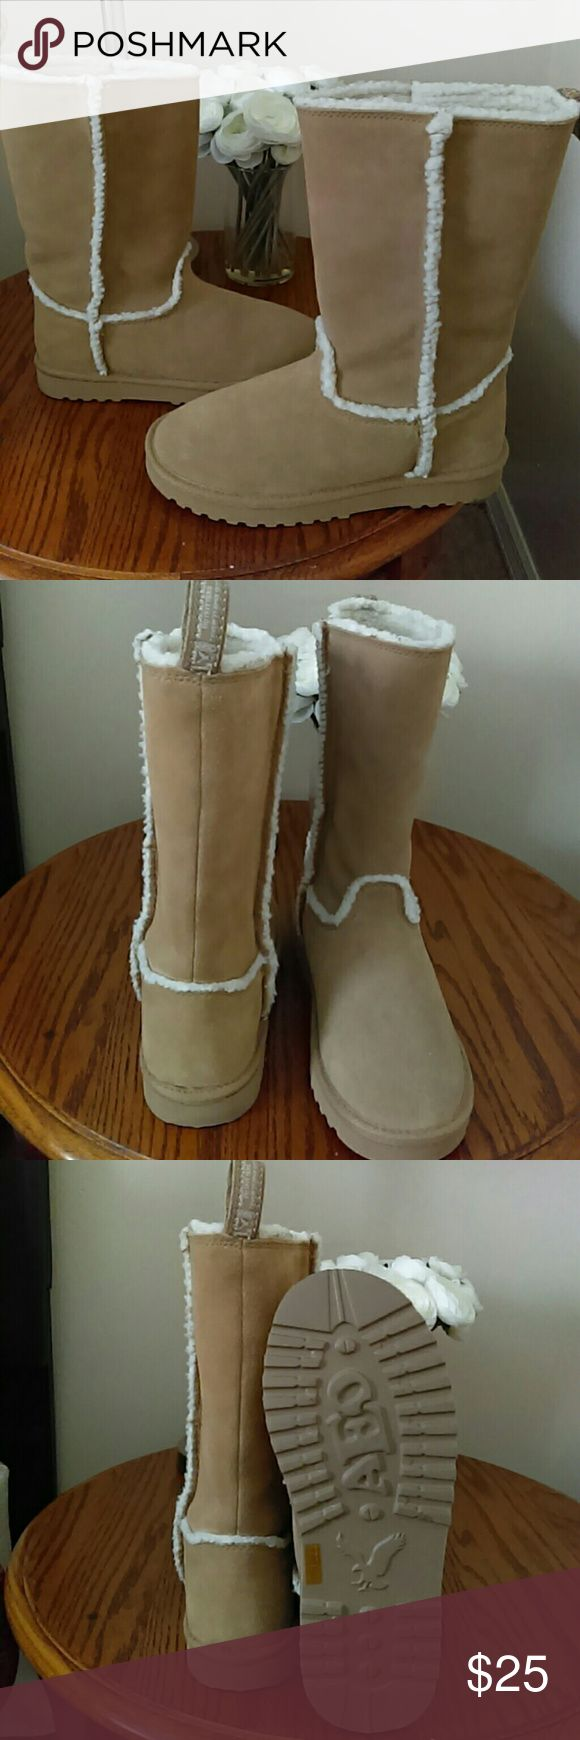 American Eagle Outfitters Boots Like New! Tan Suede Boots American Eagle Outfitters Shoes Winter & Rain Boots